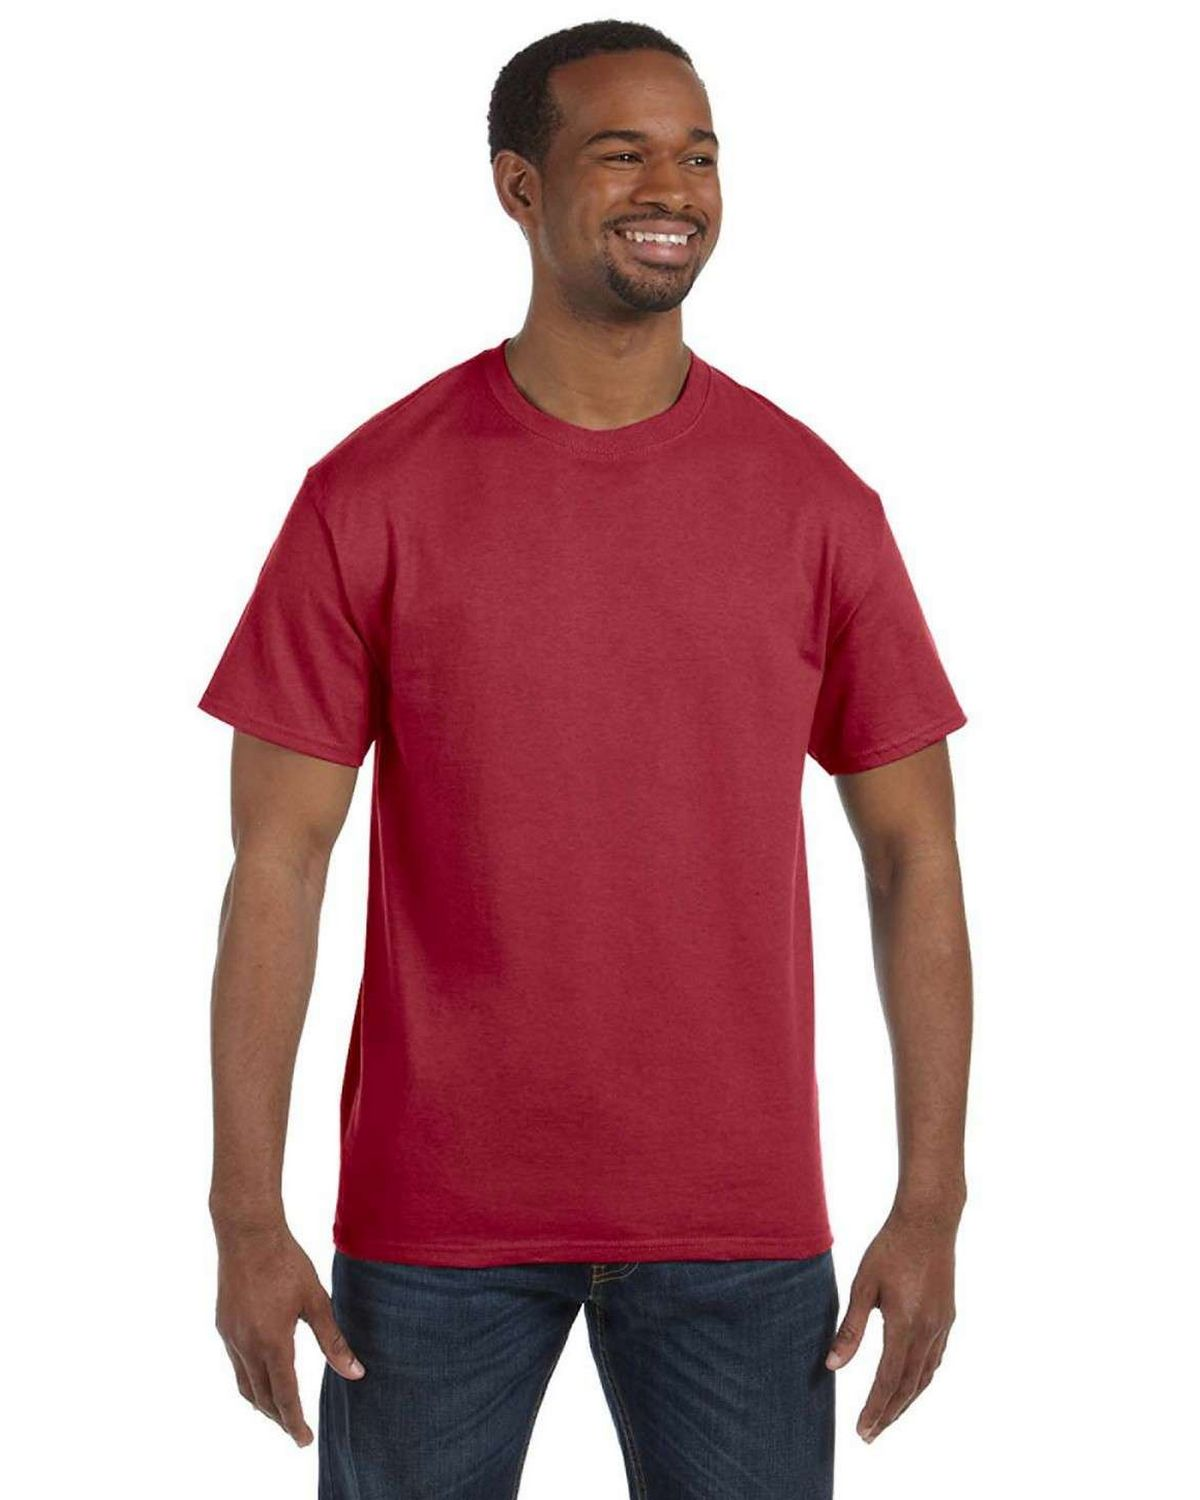 Jerzees 29 50/50 Adult Short-Sleeve Tee - Crimson - L 29